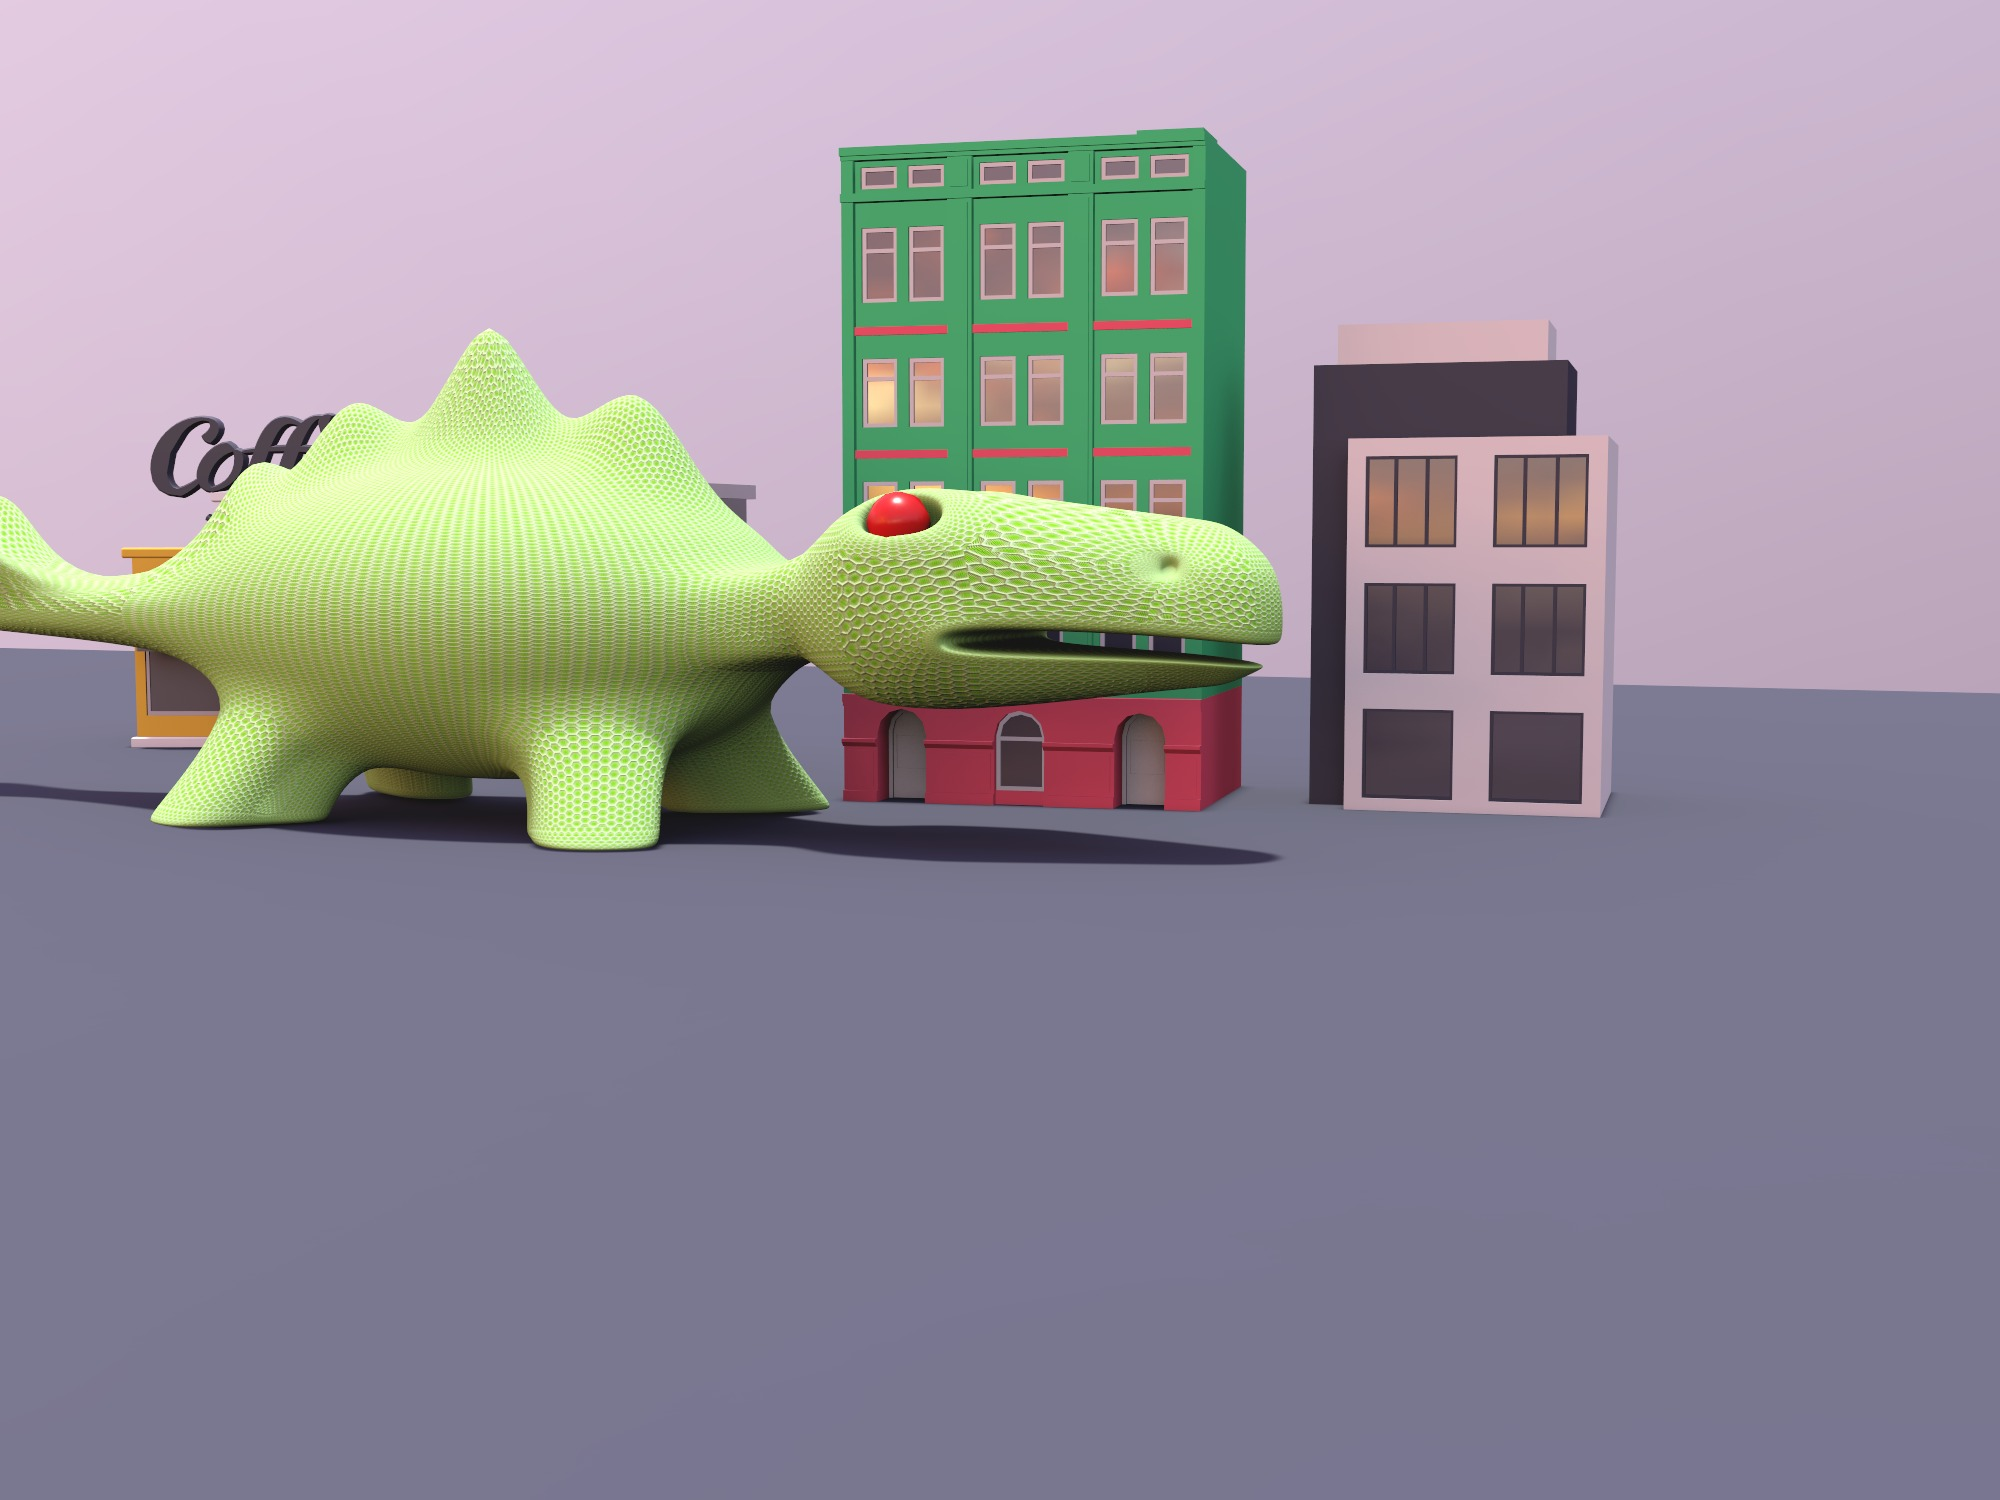 Monster! (copy) - 3D design by Kai on Dec 19, 2018